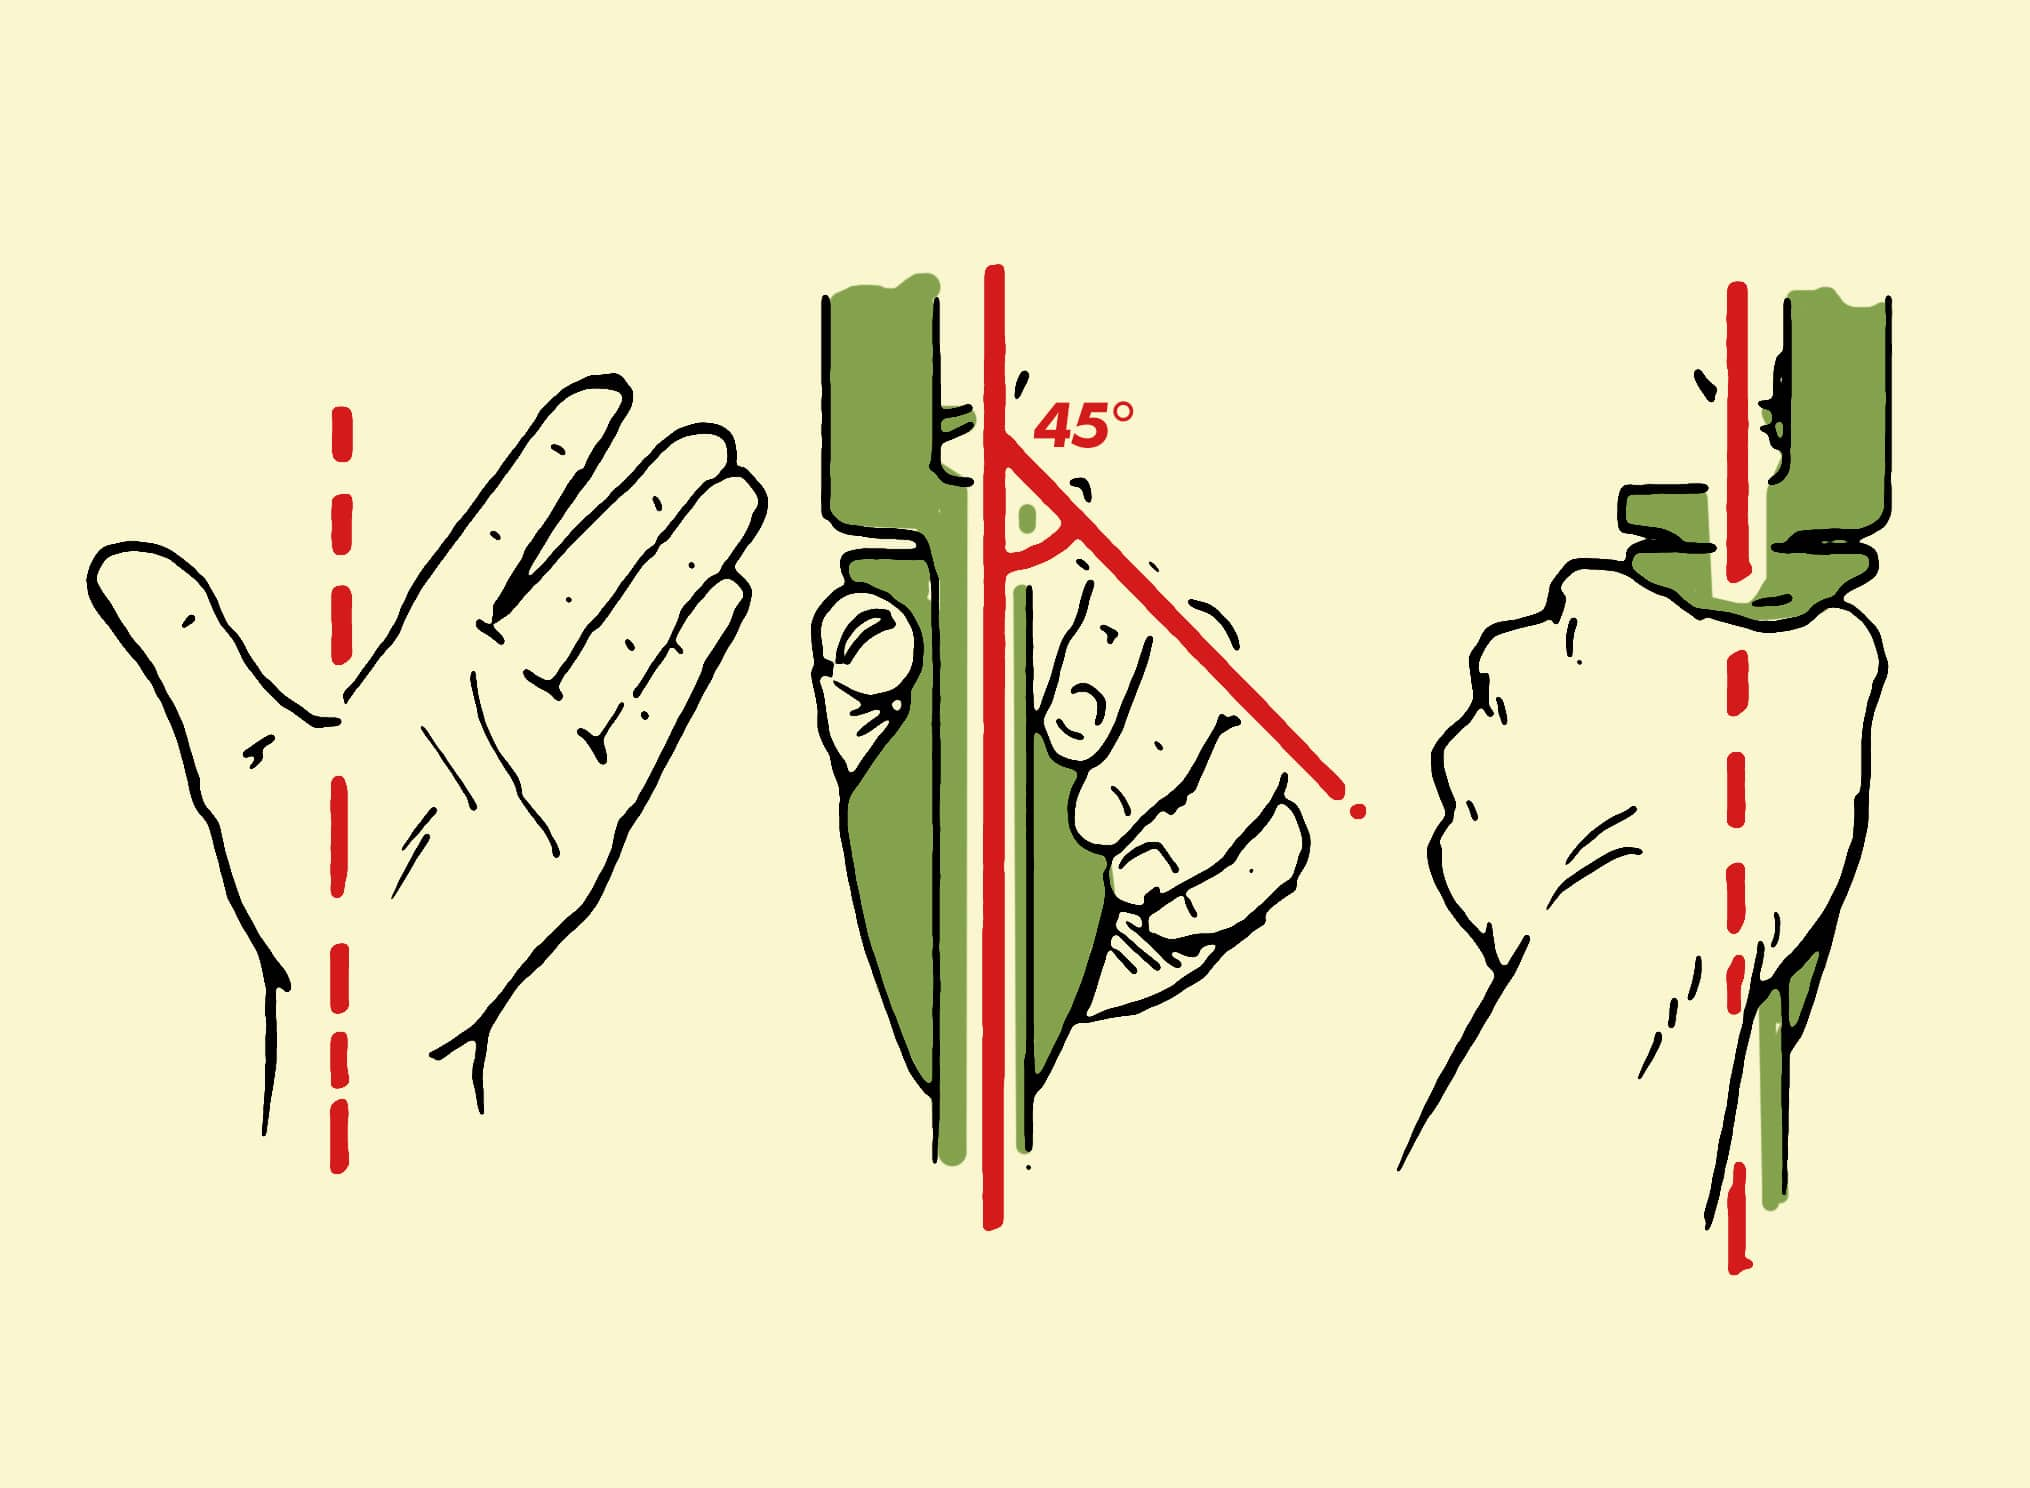 archery how to grip the bow illustration